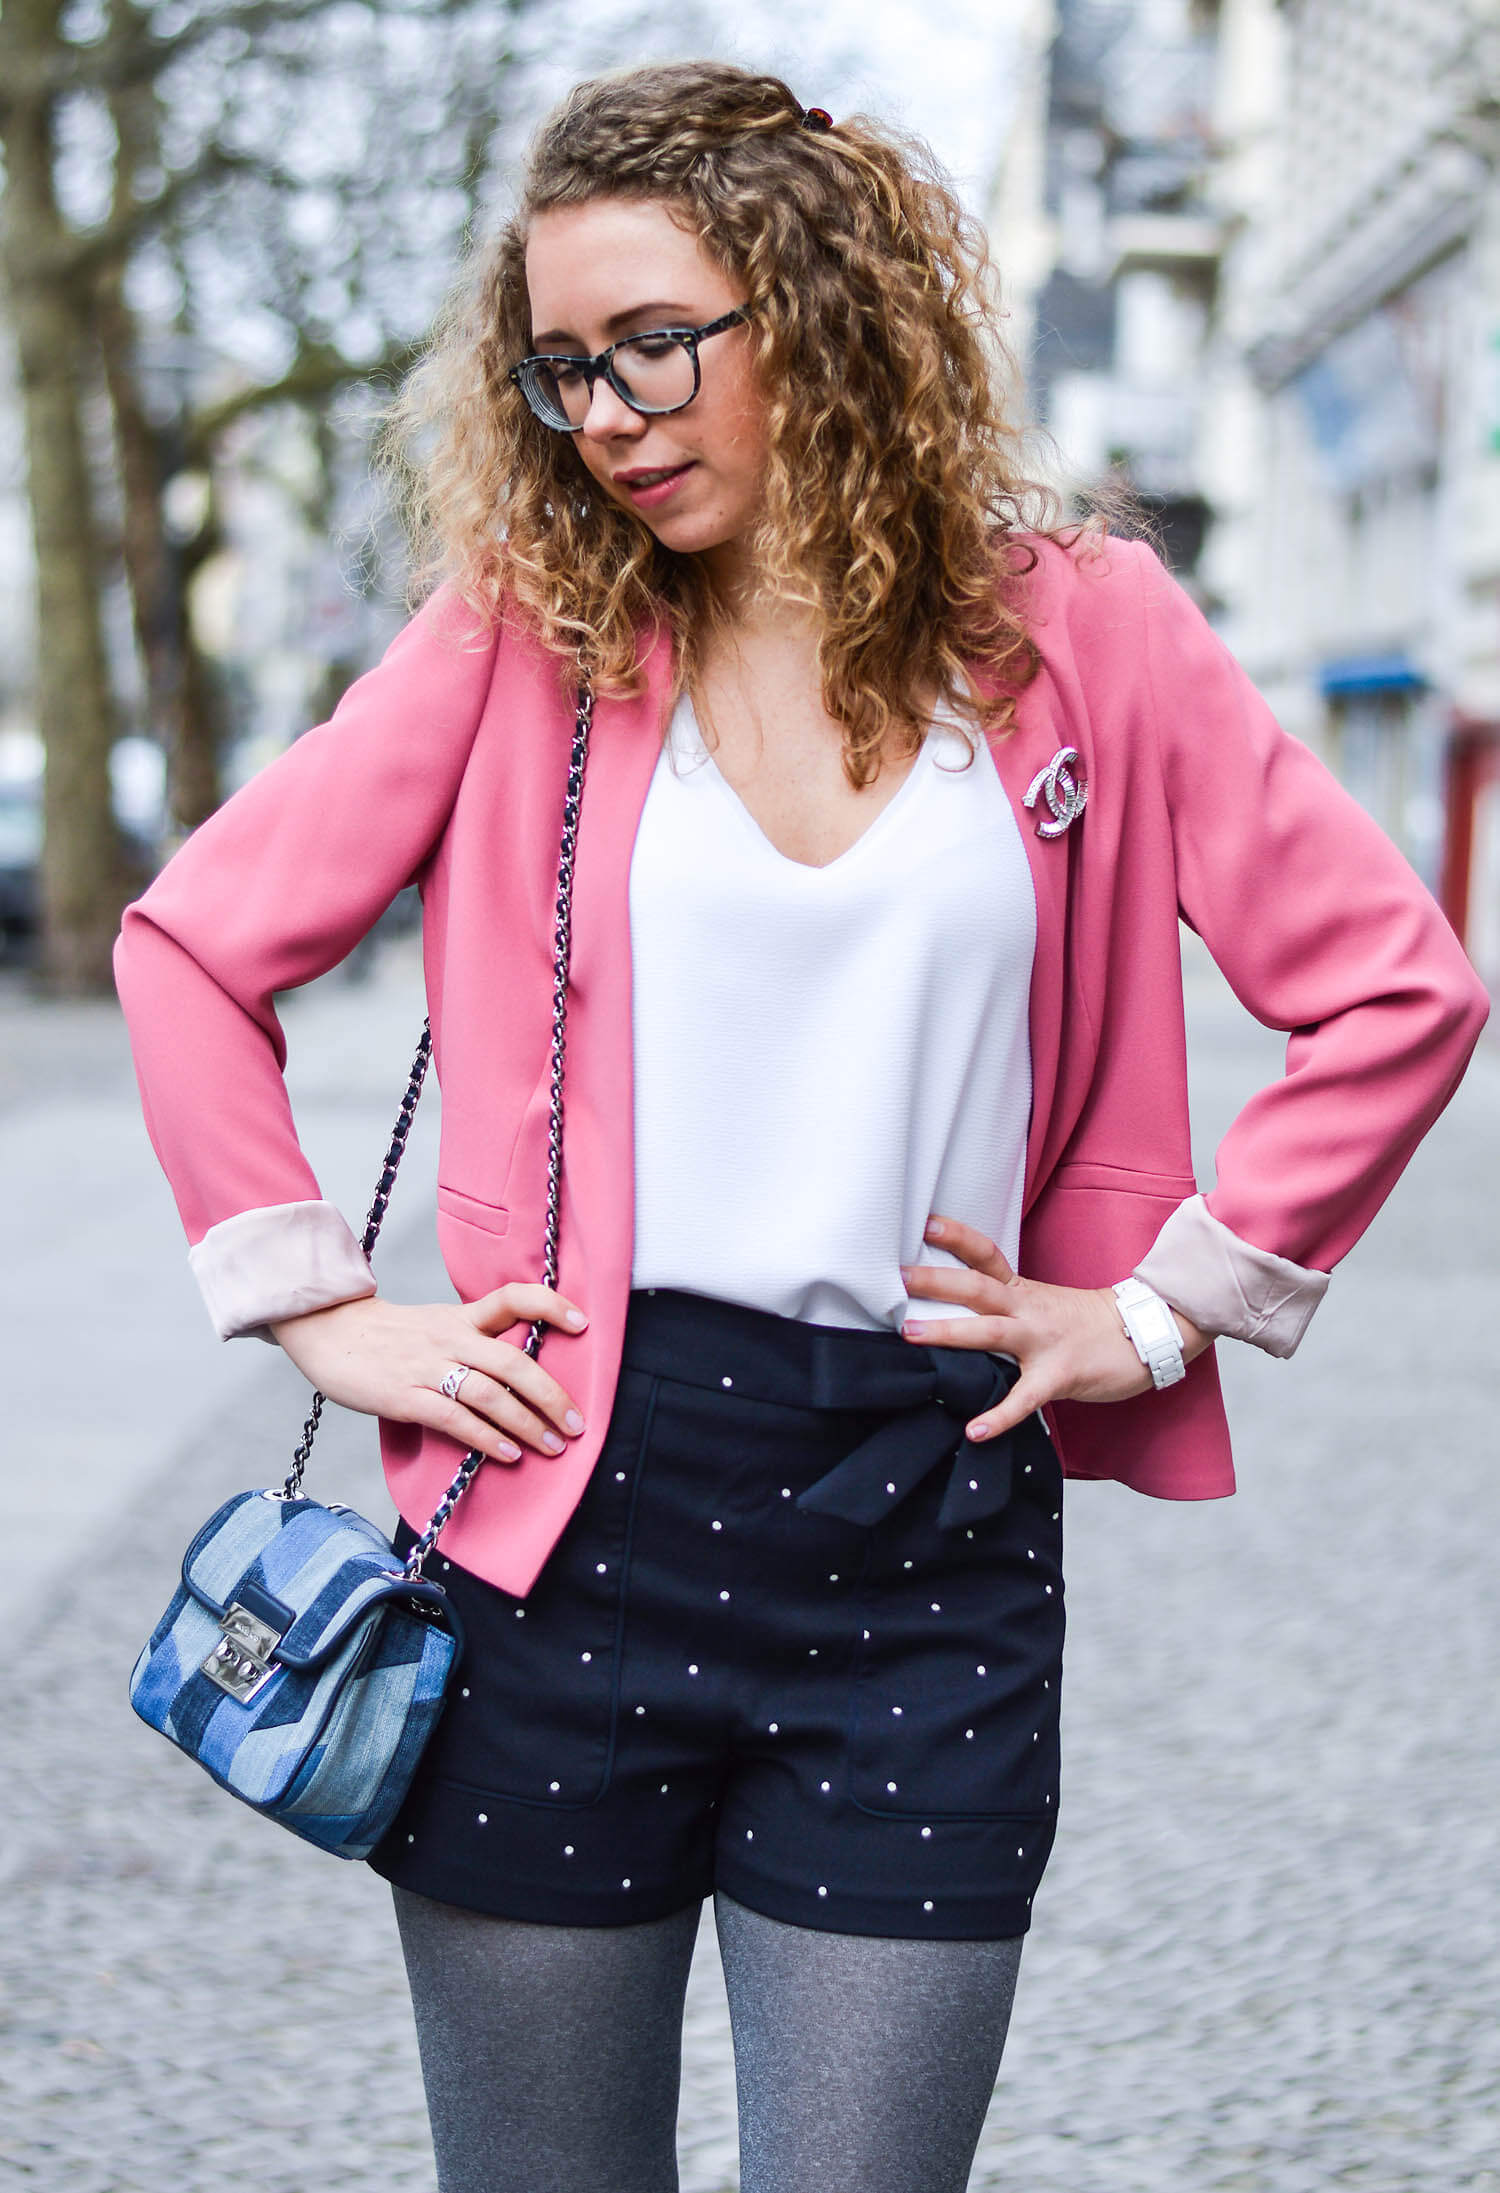 Kationette-fashionblog-nrw-Outfit-Spring-Look-Pink-Blazer-Shorts-Dandy-Shoes-streetstyle